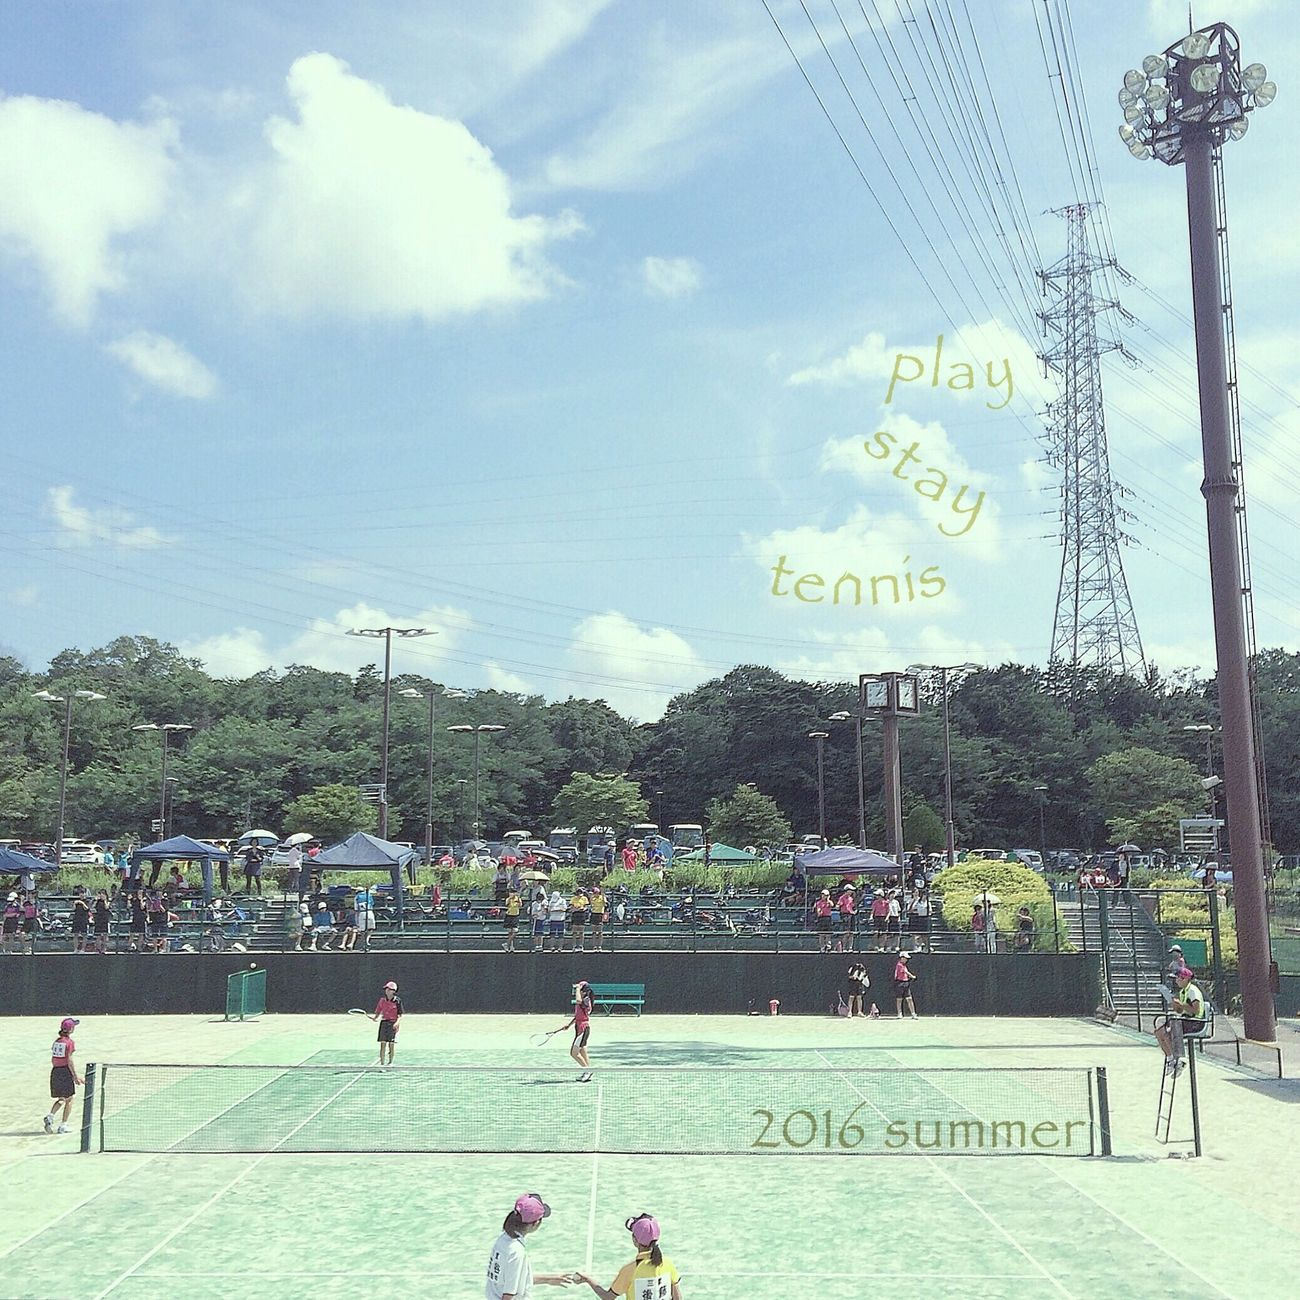 中体連 2016 夏 Playstay テニス Sports Sports Photography Tennis Enjoying The Sun EyeEm Best Shots EyeEm Gallery IPhoneography Iphone5s Clouds And Sky Sky And Clouds Sky_collection Sky_collection Lifestyles Summer Summer2016 空 雲 応援 7月16日 テニスコート